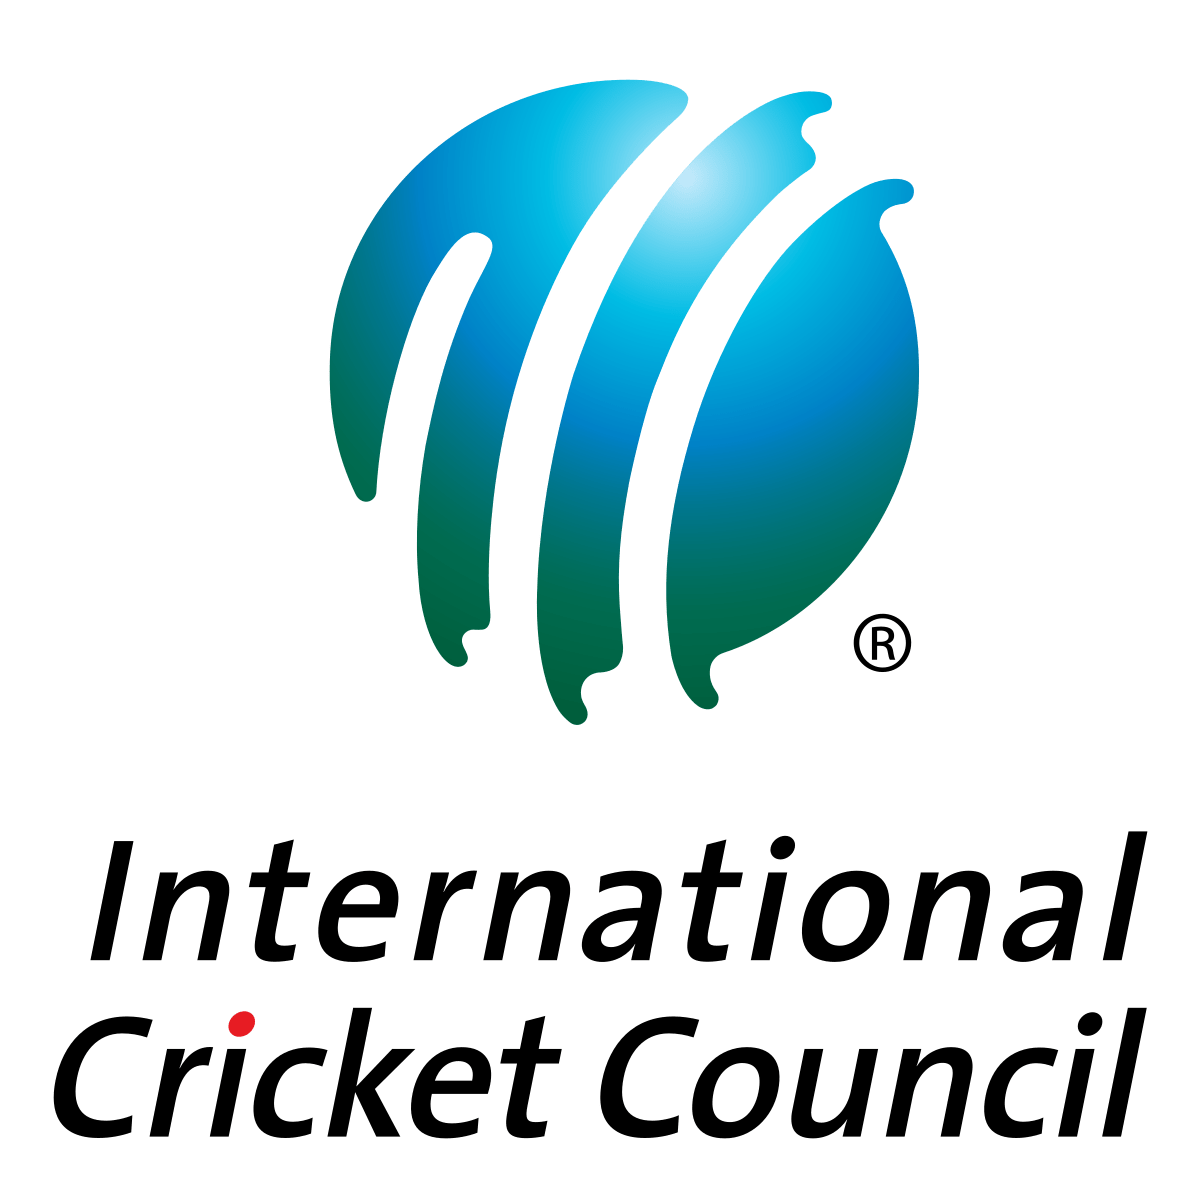 International Cricket Coucil